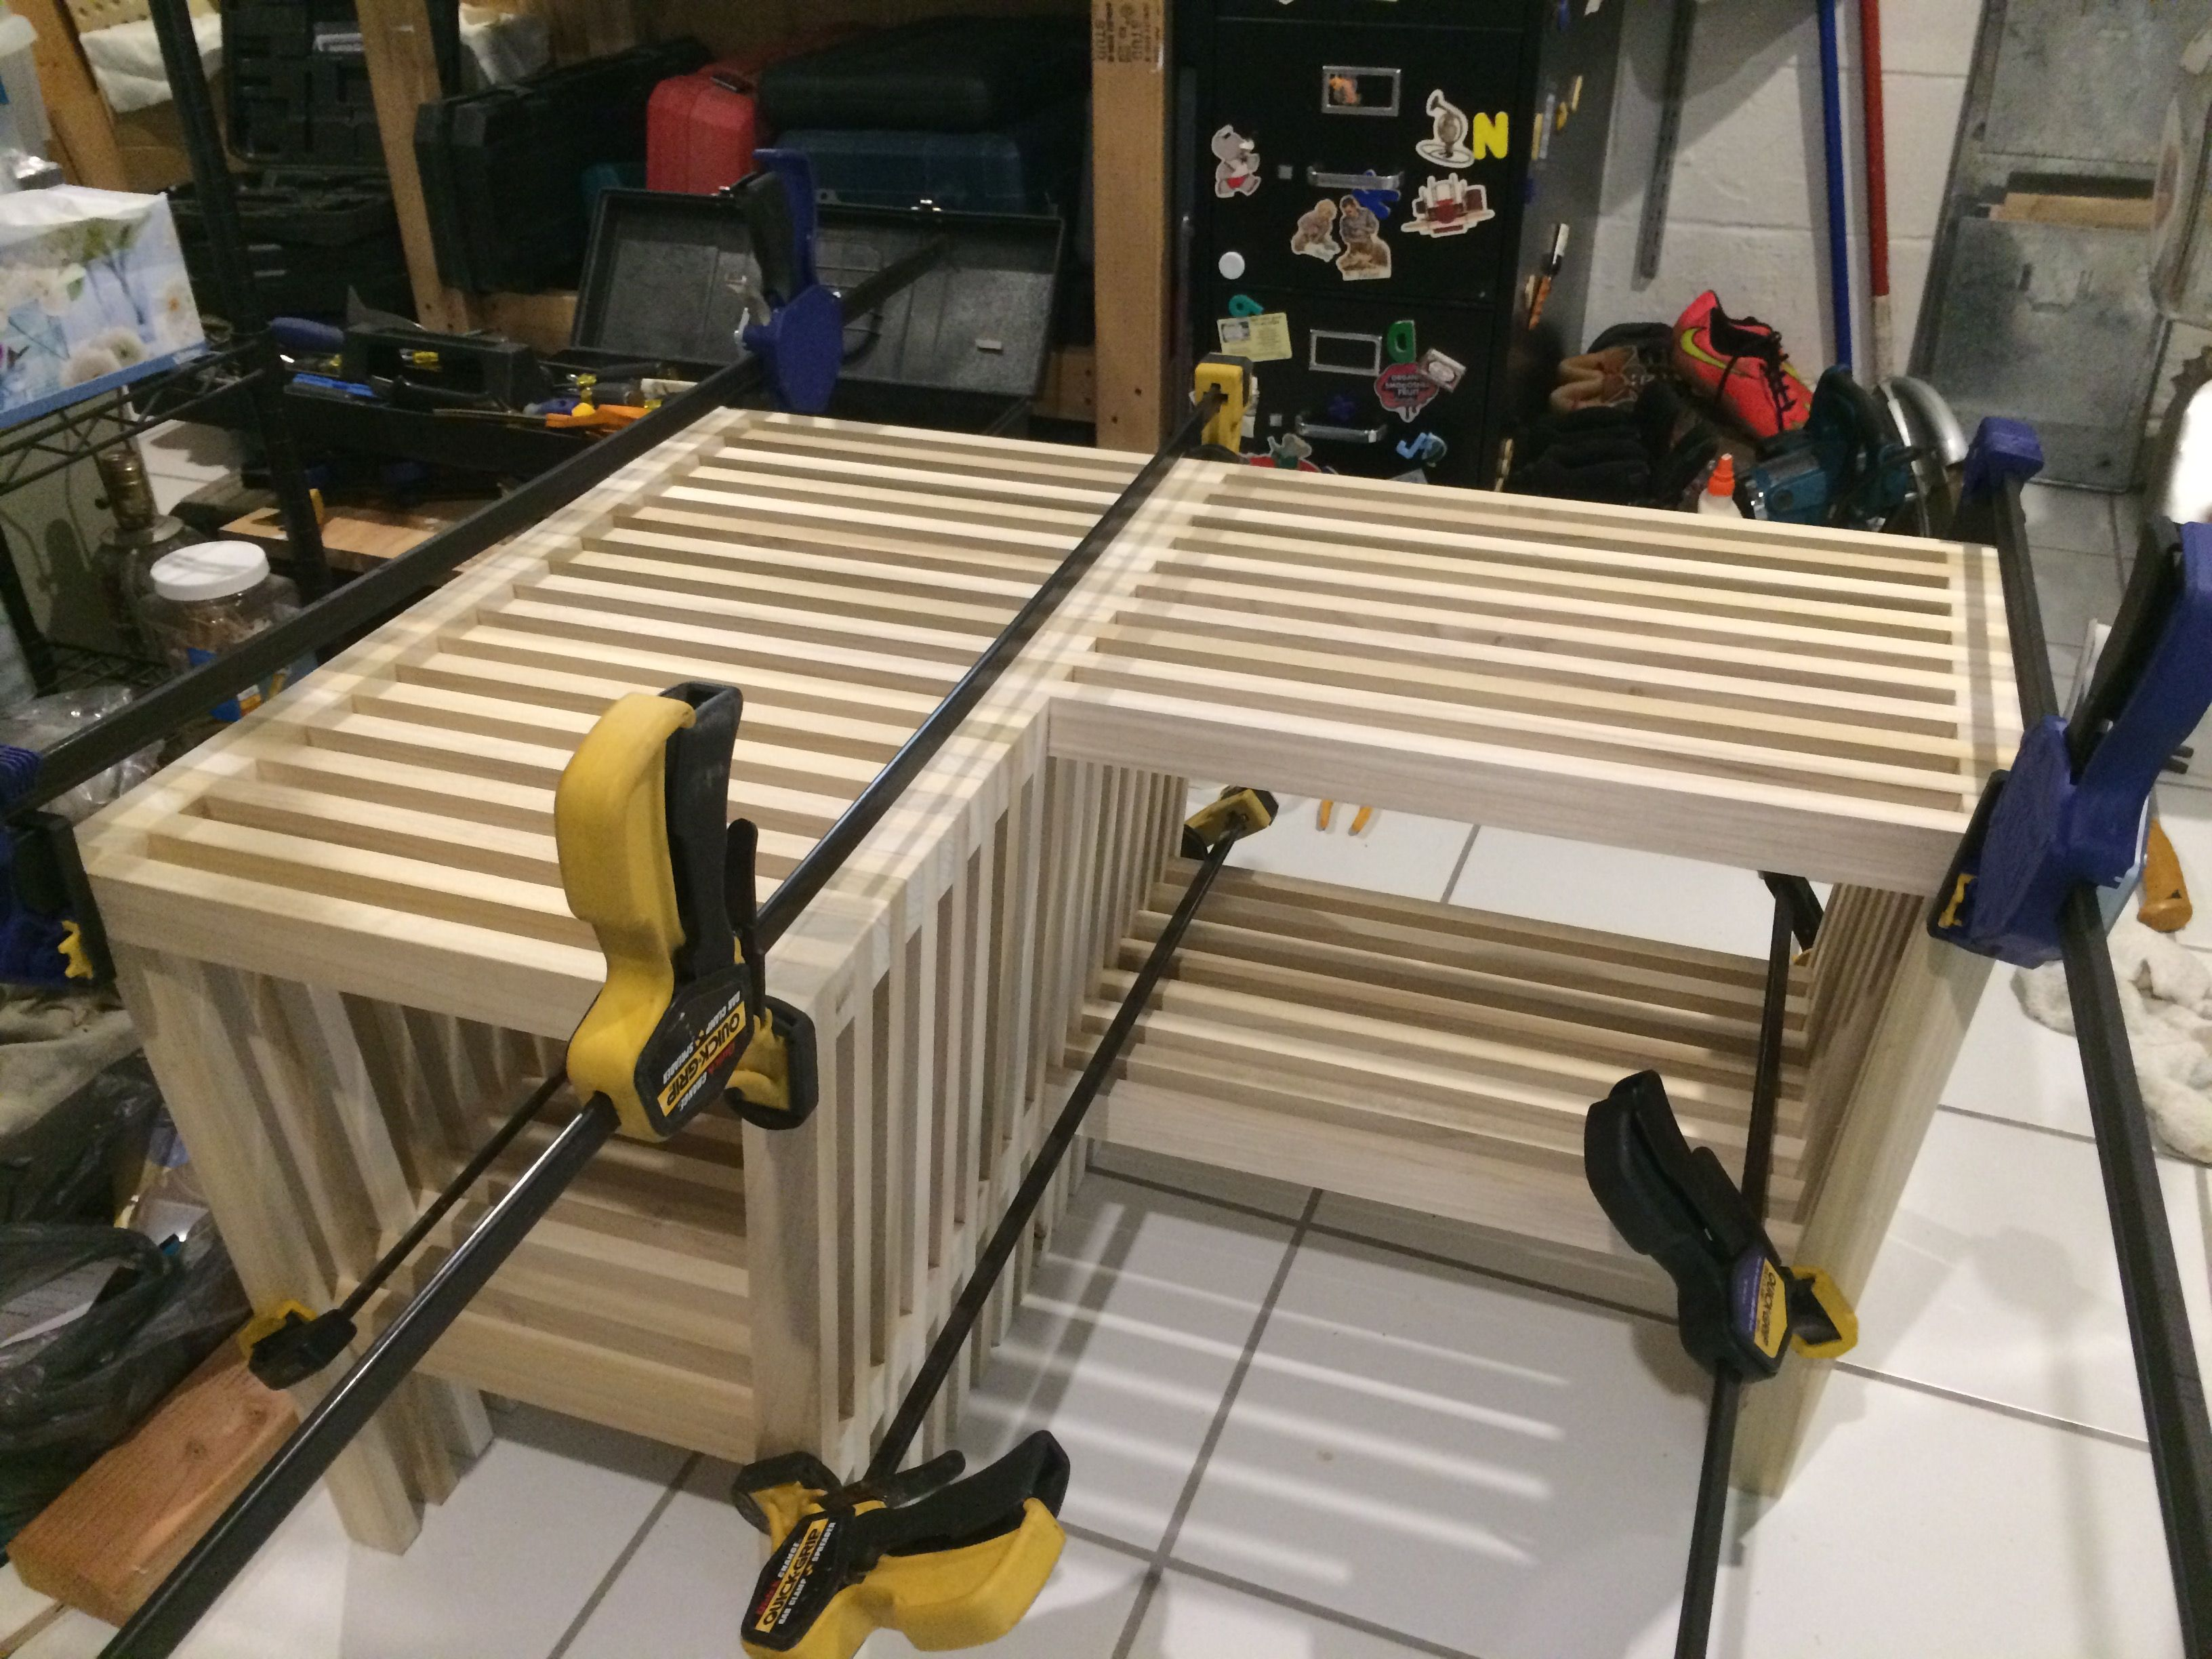 Superb Diy Slatted Wood Bench Made Of Poplar Slatted Wood Gmtry Best Dining Table And Chair Ideas Images Gmtryco